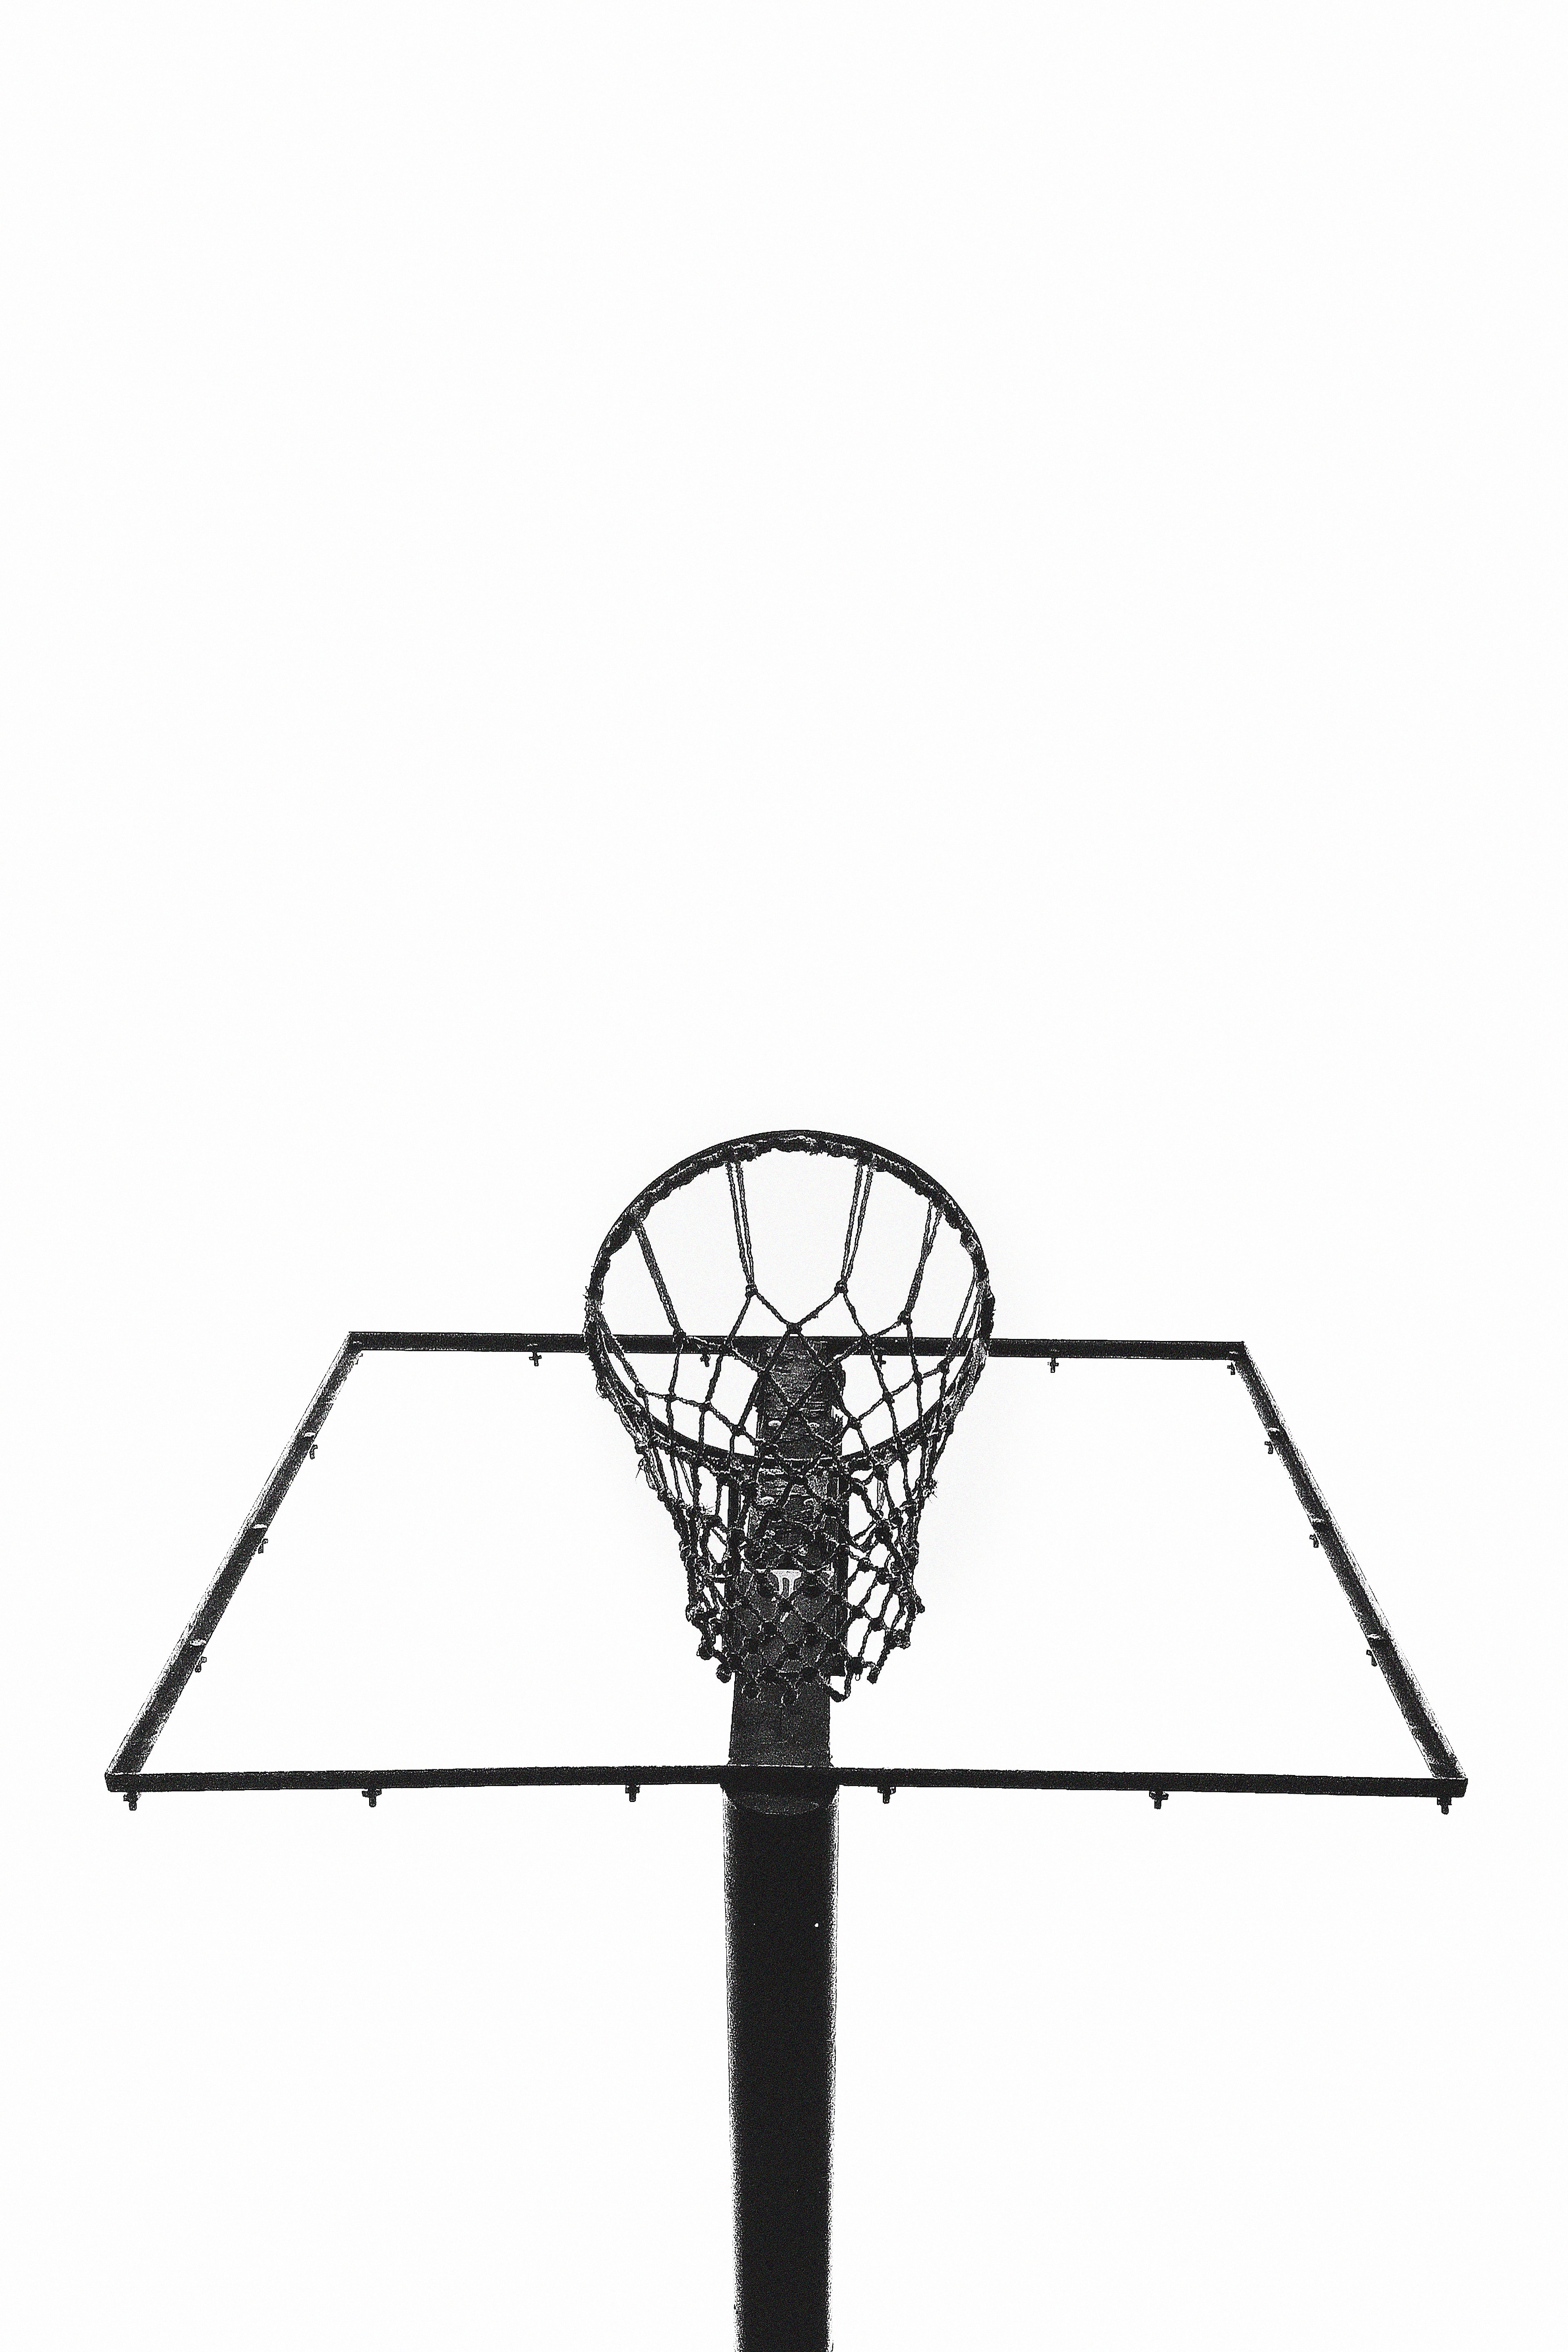 Staring up at a basketball net hoop outside, with complete whiteness in the background.